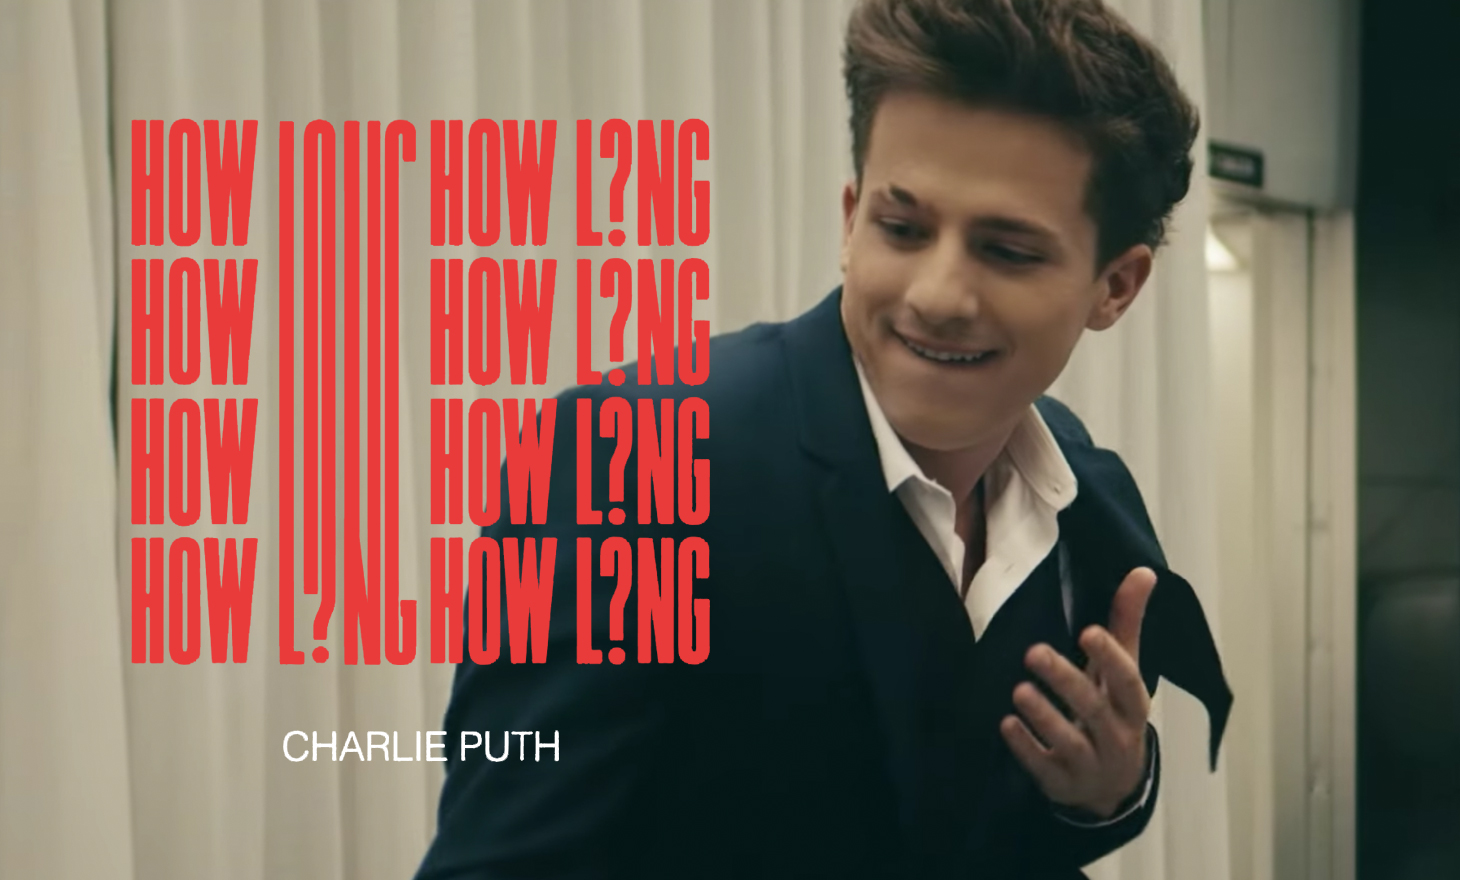 Charlie Puth : How Long